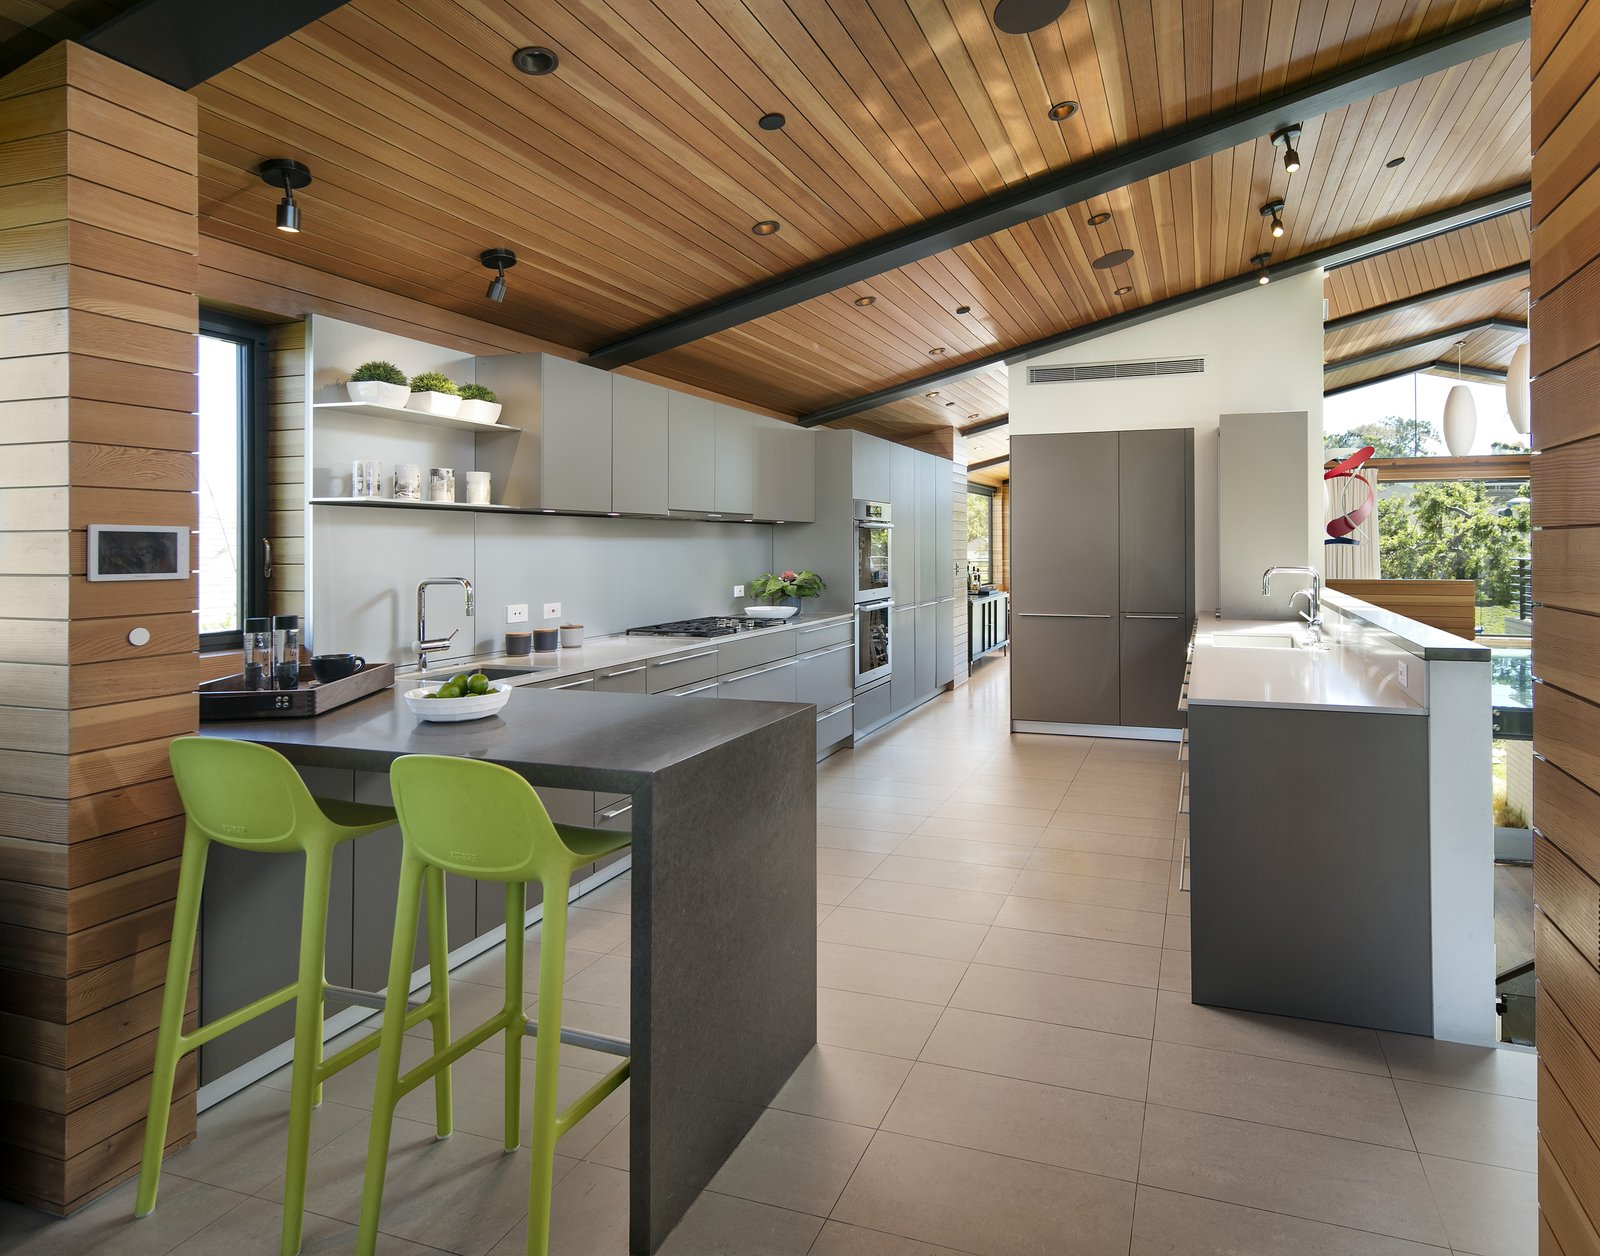 The minimal kitchen features a breakfast bar.   Cohen Residence by Abramson Teiger Architects